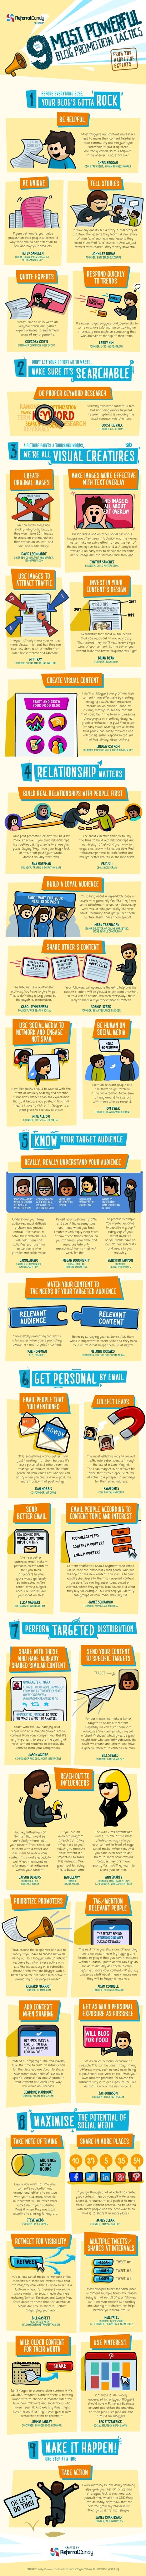 How to Promote Your Stories Effectively #Infographic | Information Technology & Social Media News | Scoop.it